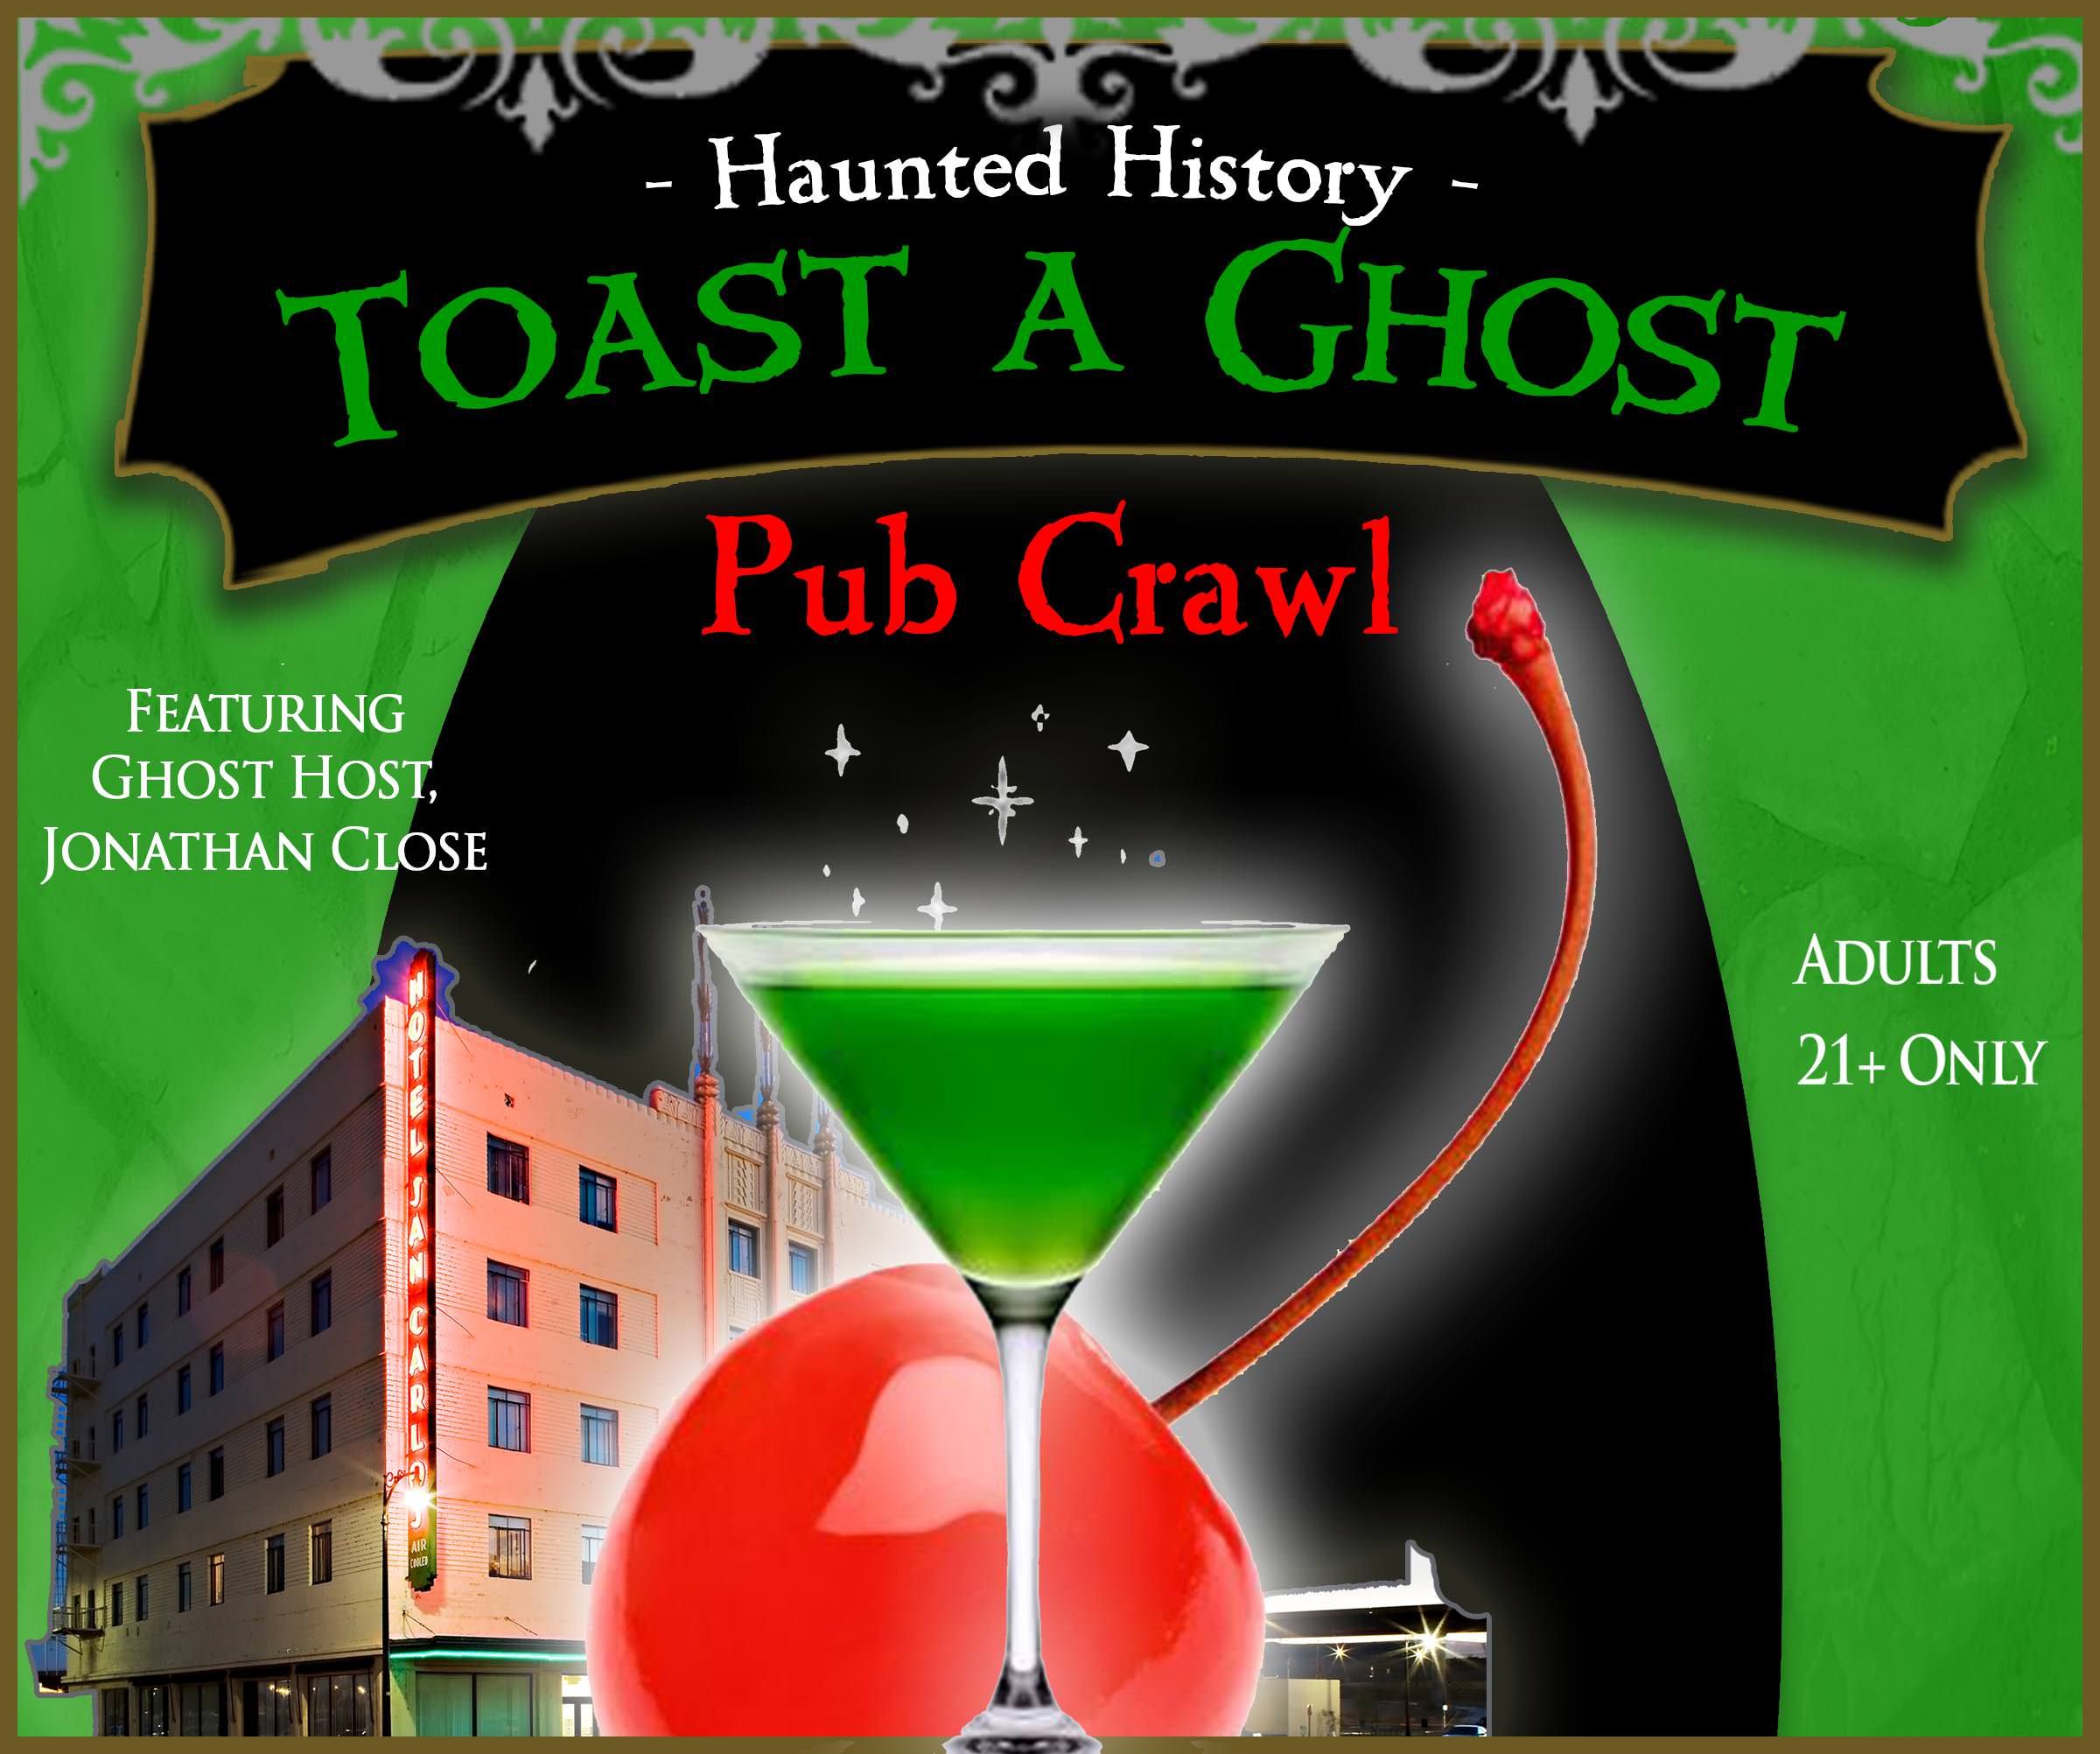 Toast-a-Ghost Pub Crawls